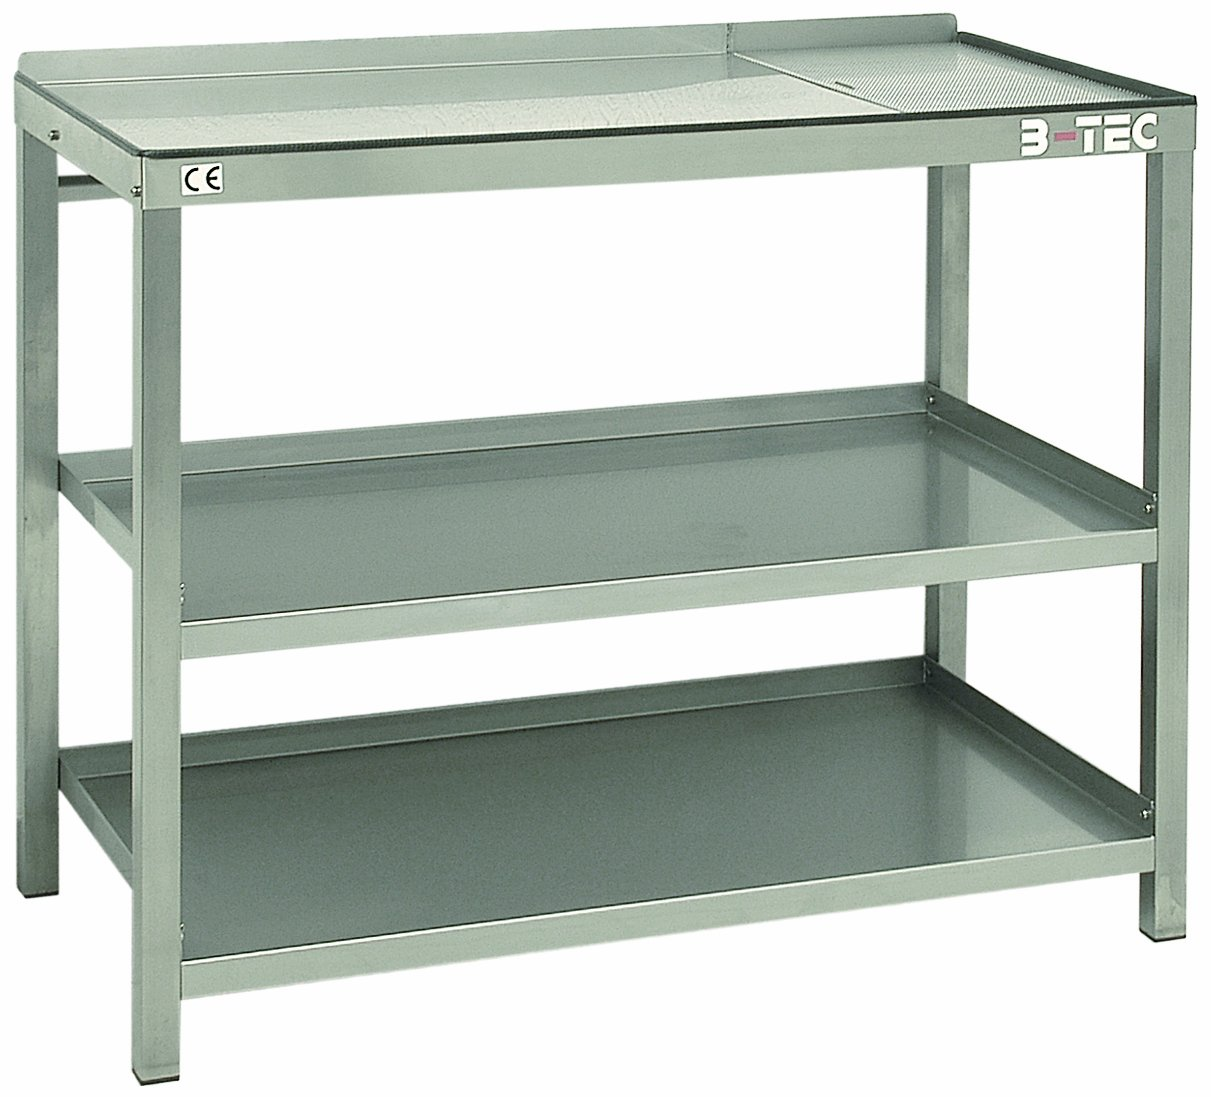 B-TEC Systems AS-1200 Stainless Steel Modular Work Table with Drain Area, 47'' Length x 24'' Width x 38-1/2'' Height